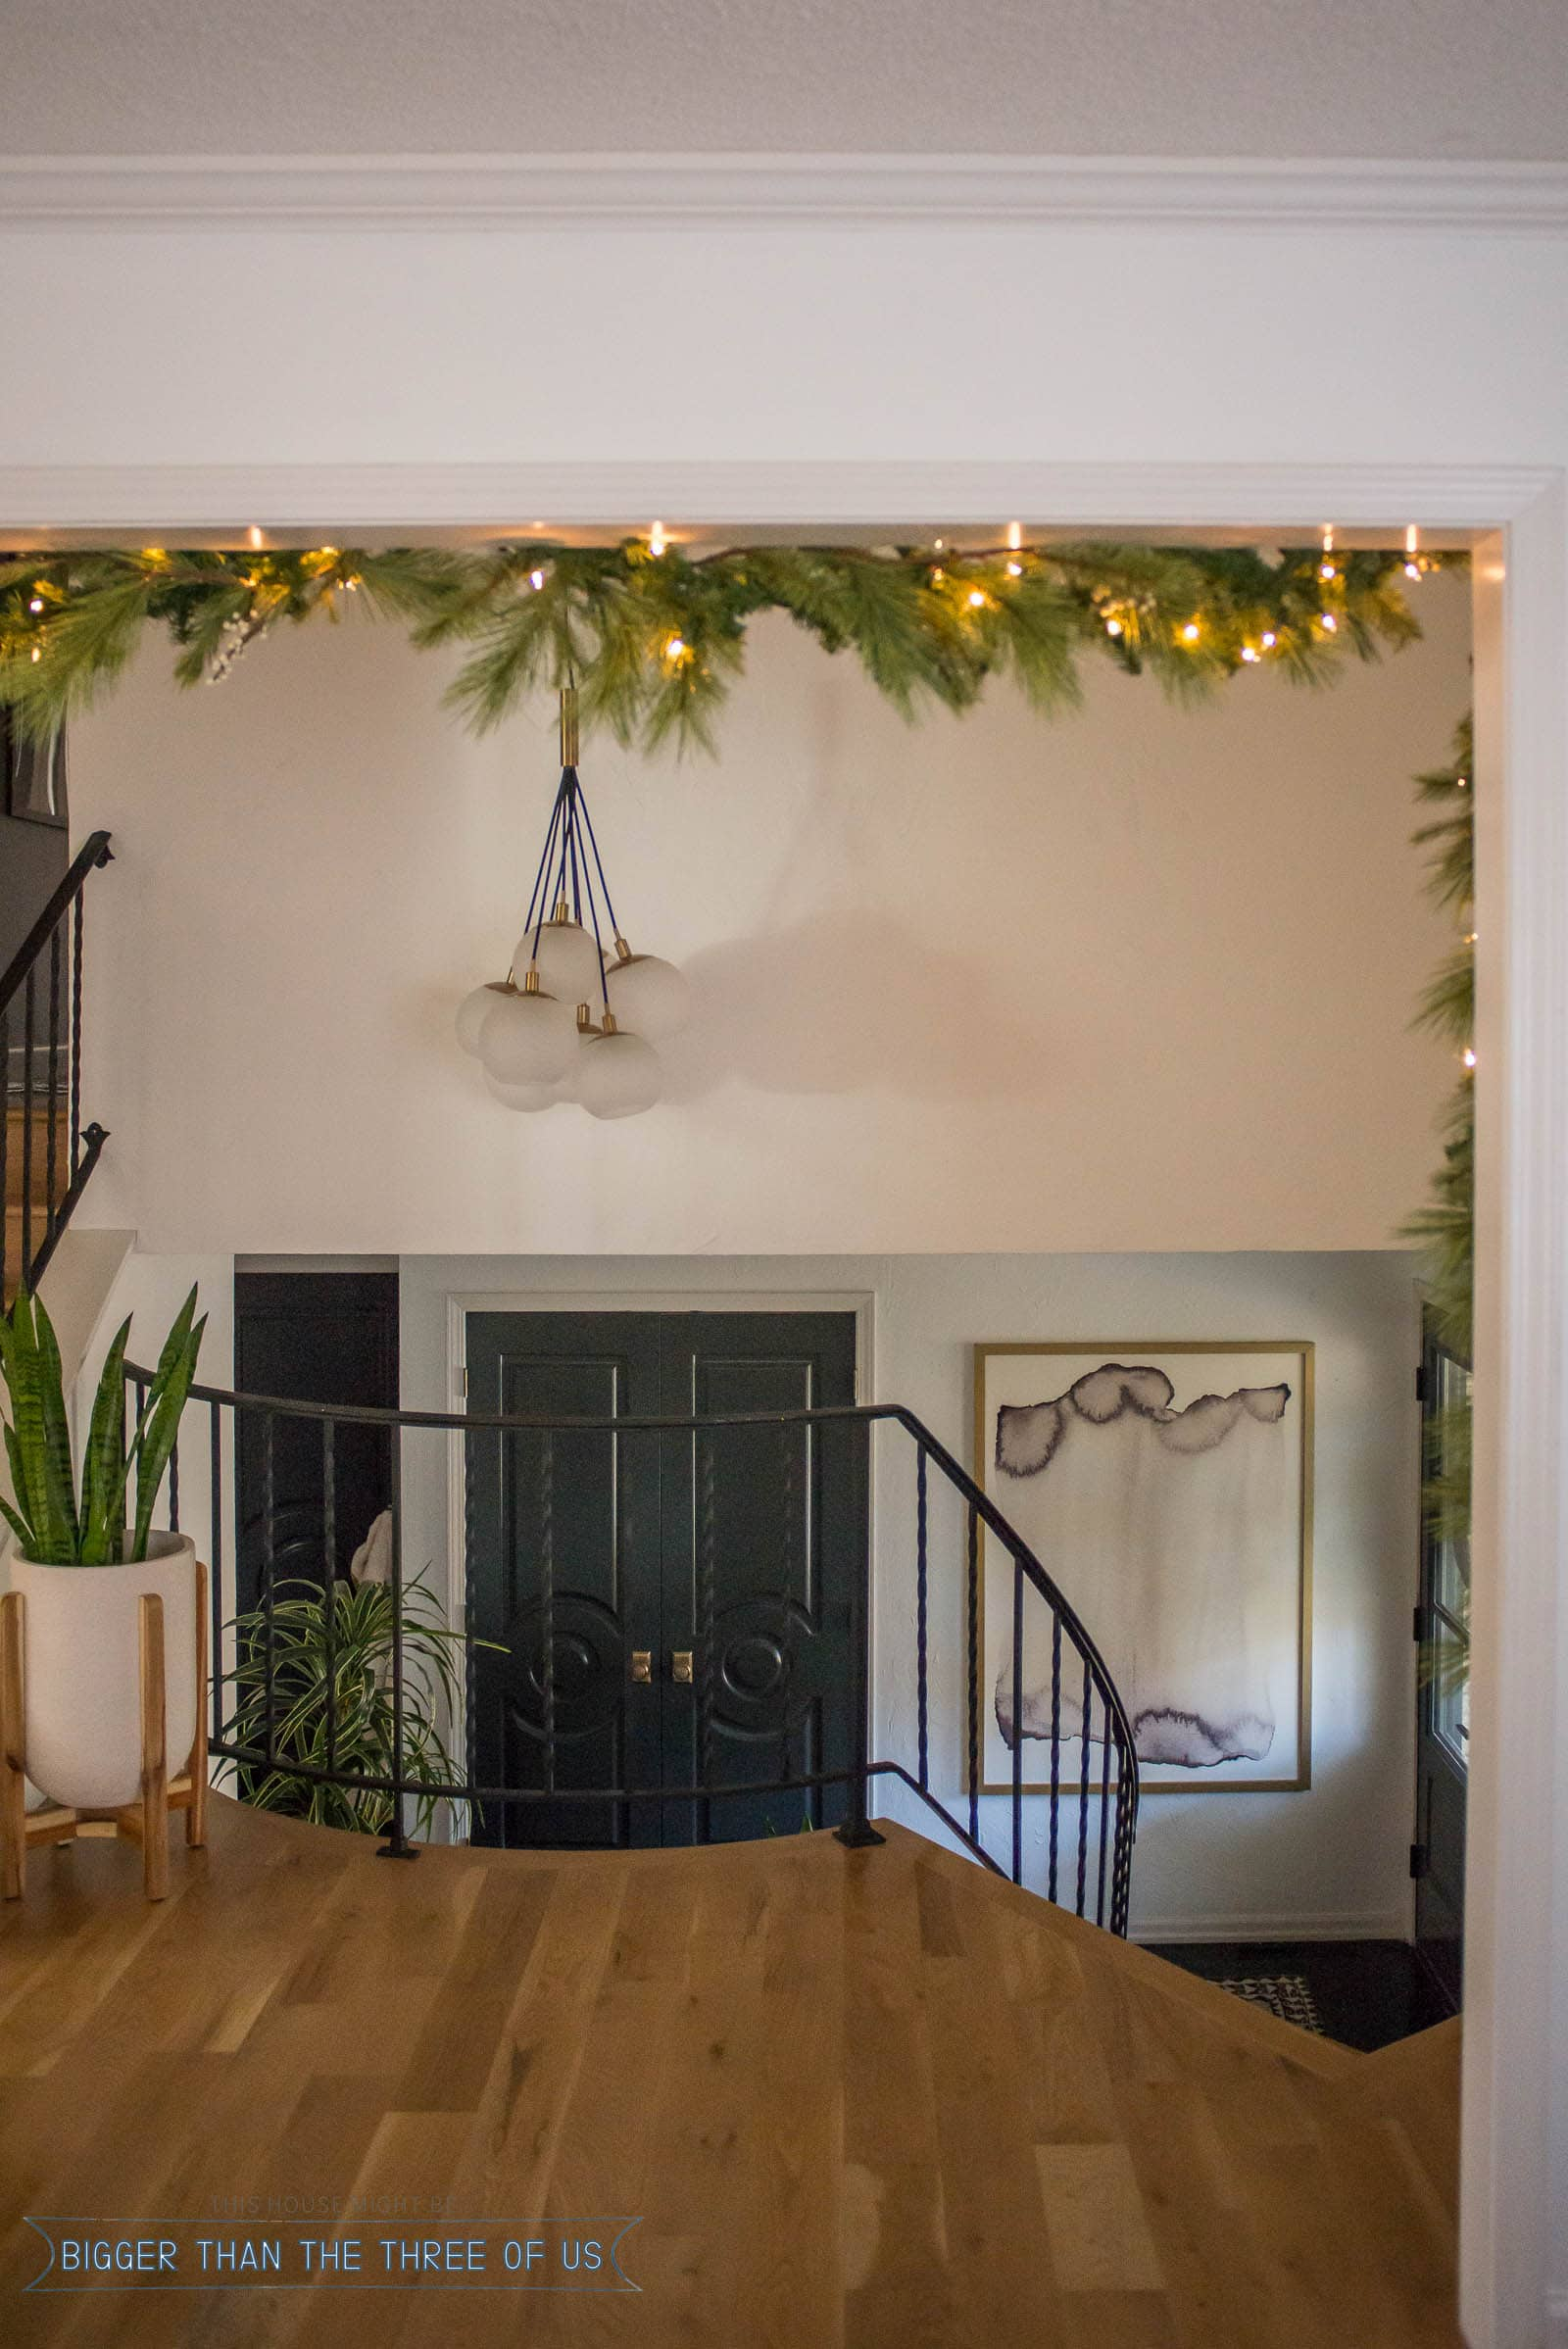 Christmas Garland hanging in doorway overlooking entryway with blue and brass accents.